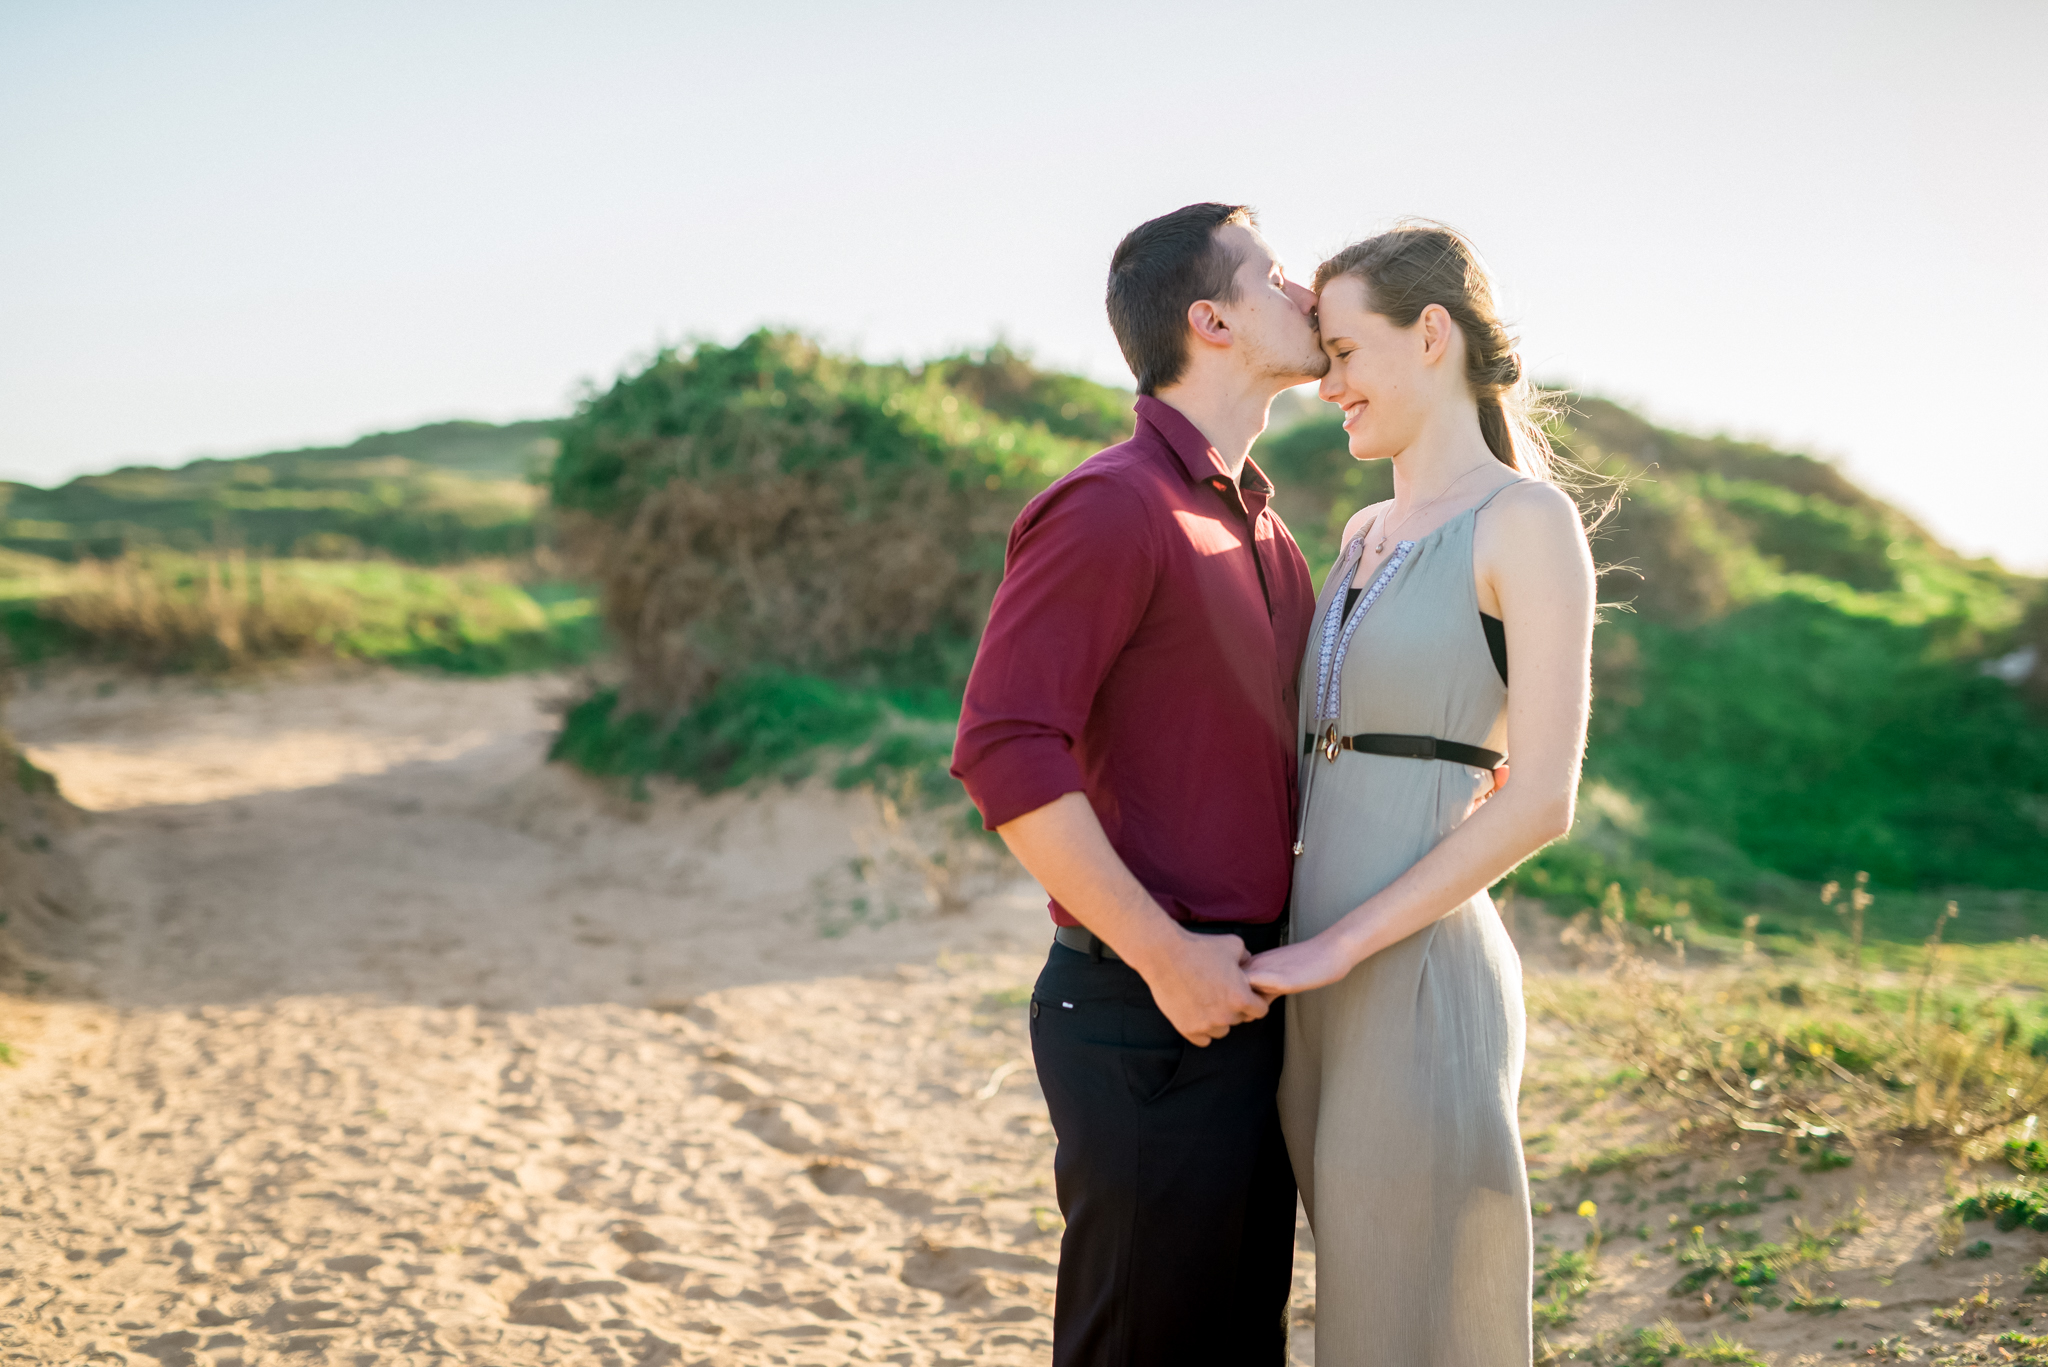 Cliffside-beach-engagement-session-hadera-israel-kate-giryes-photography-9197.jpg